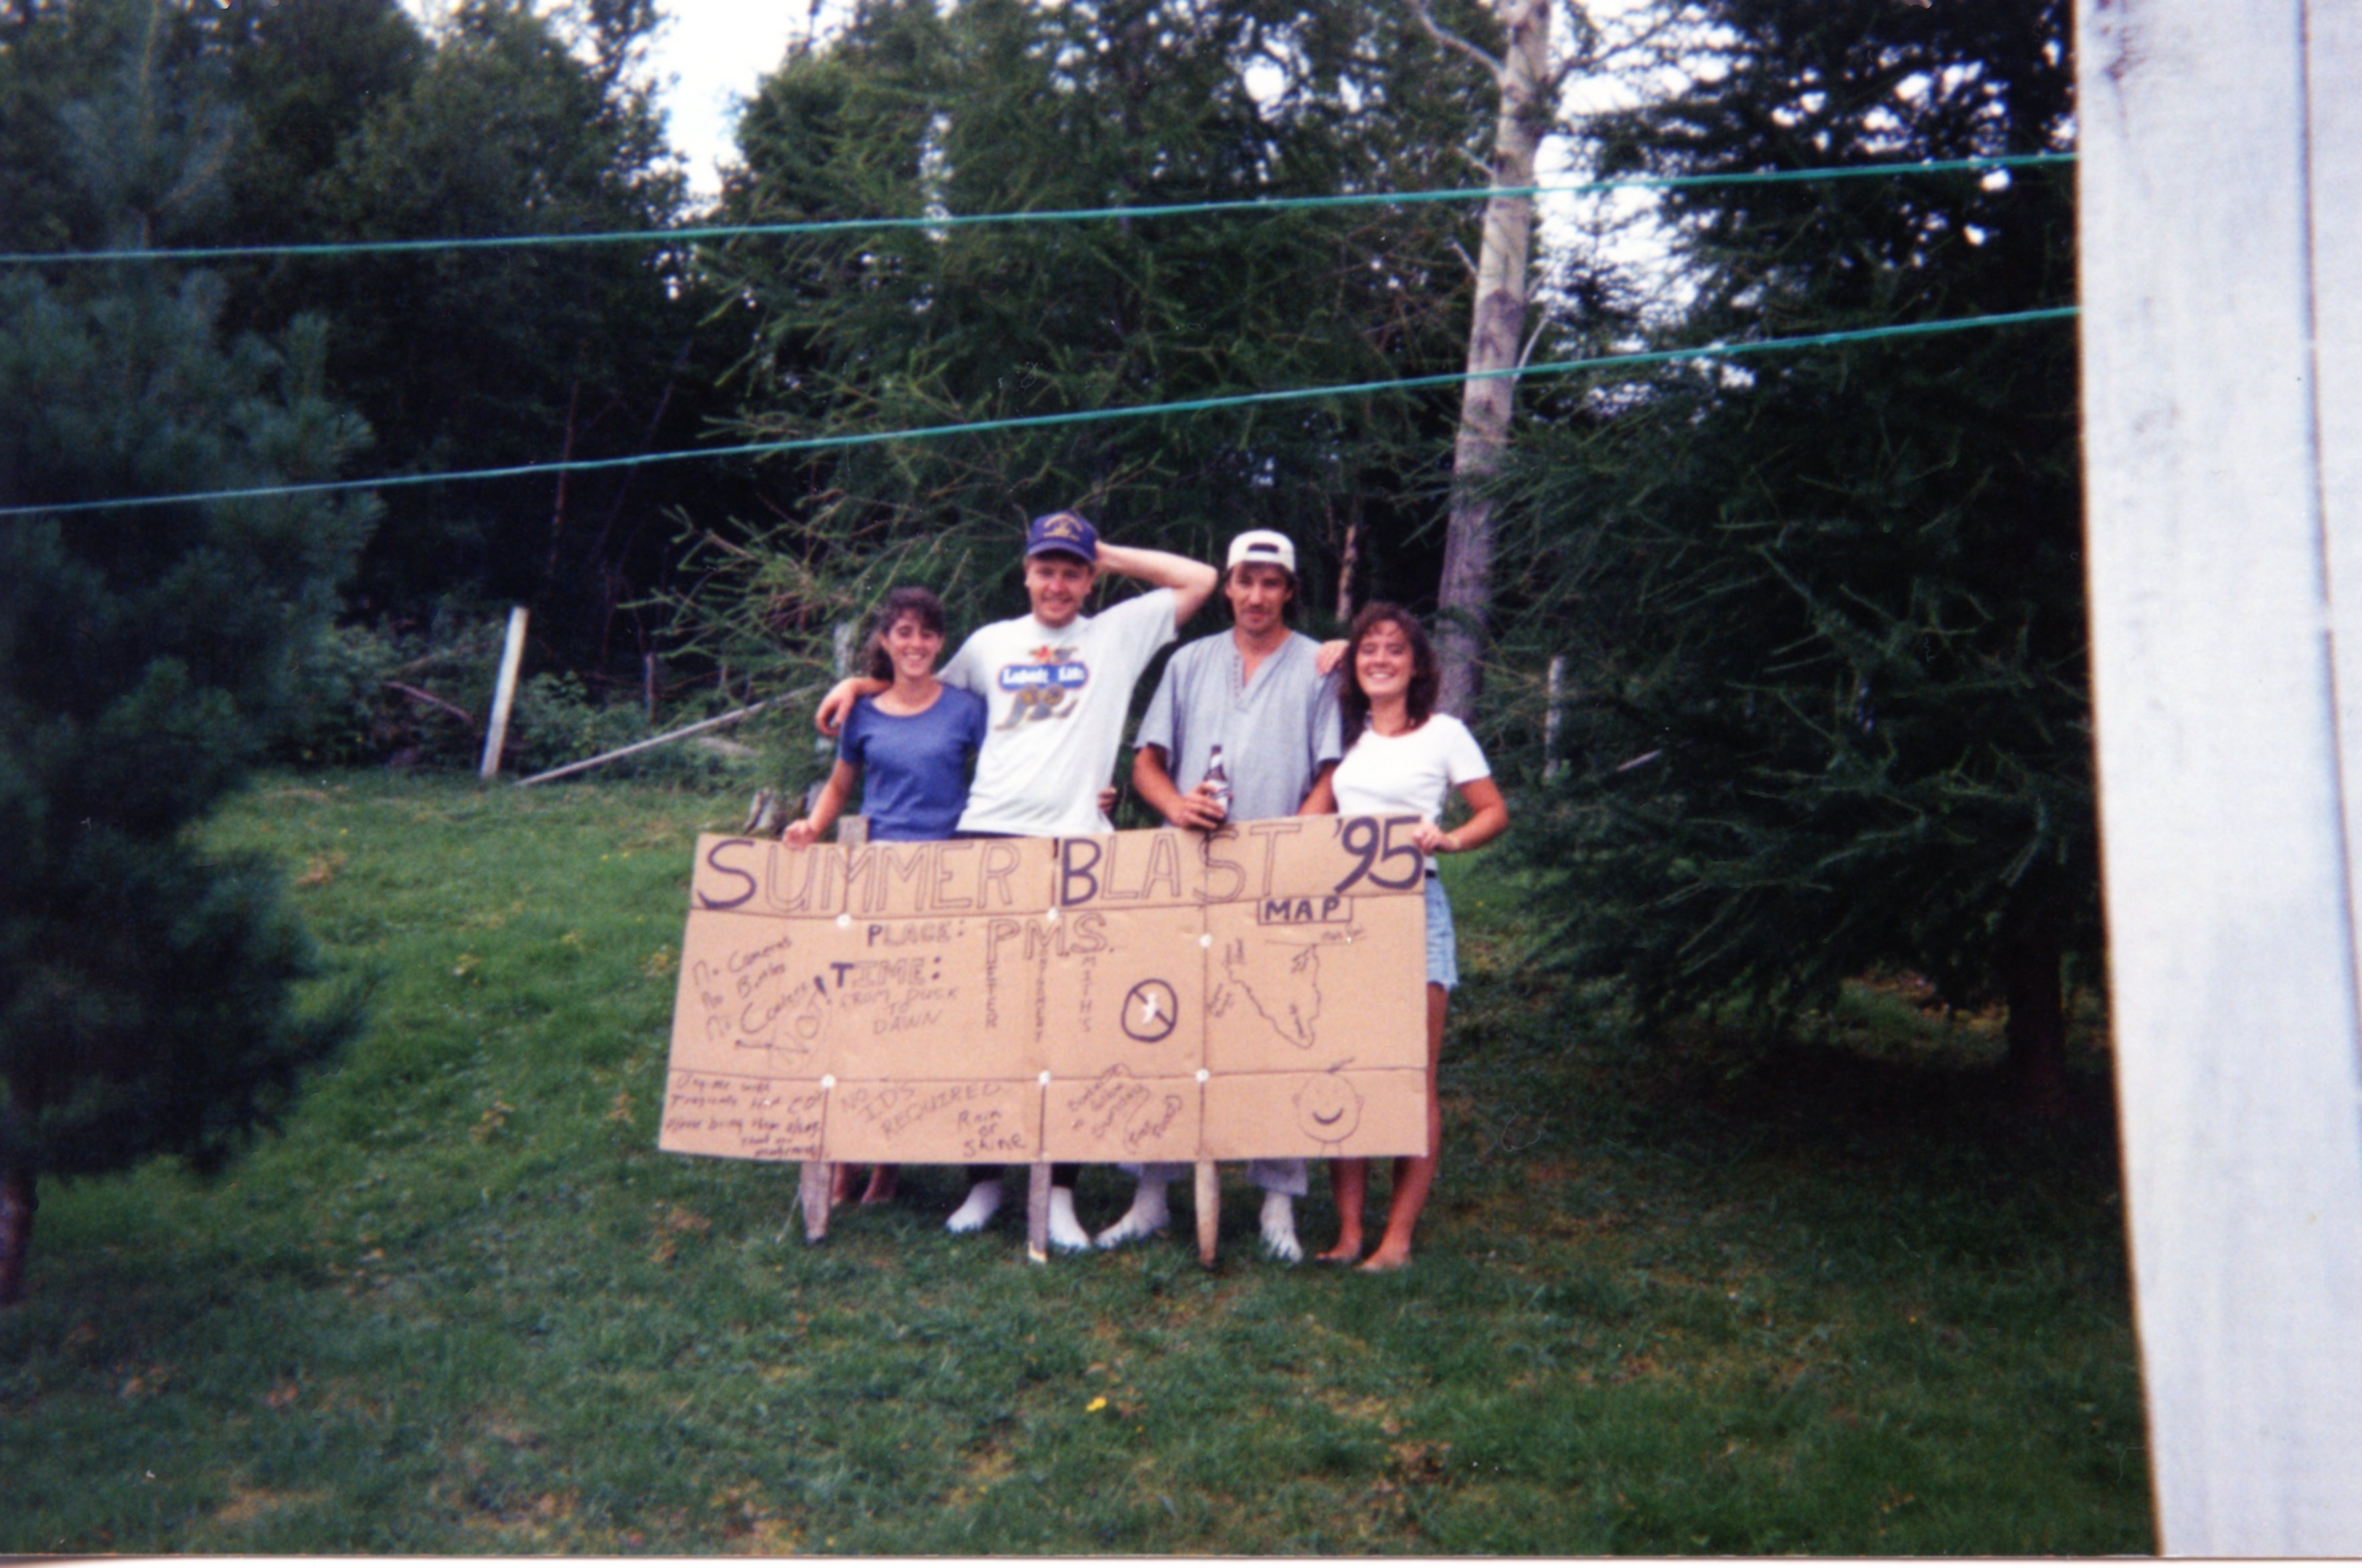 SummerBlast 95 Sign